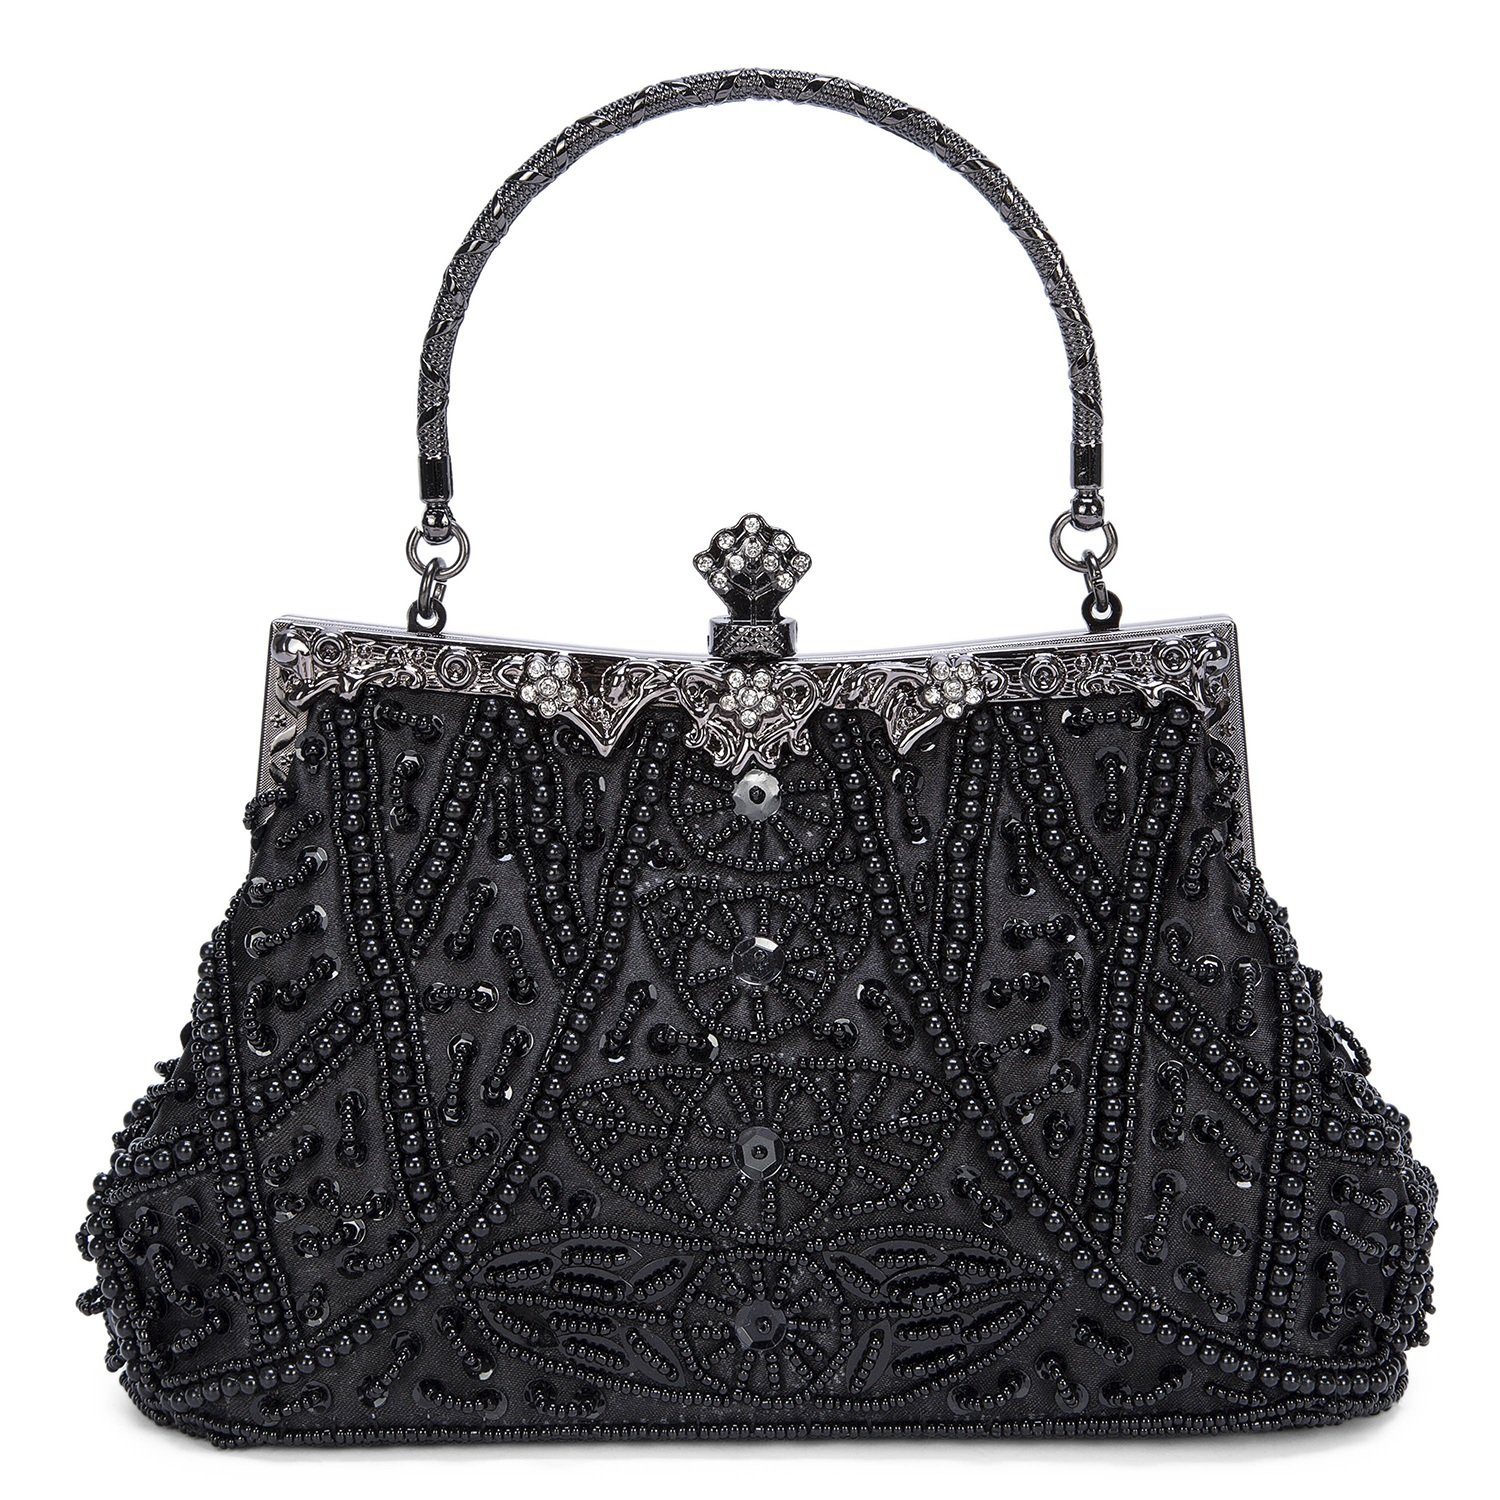 Kaever Women's Vintage Style Beaded and Sequined Evening Bag Wedding Party Handbag Clutch Purse (Black)